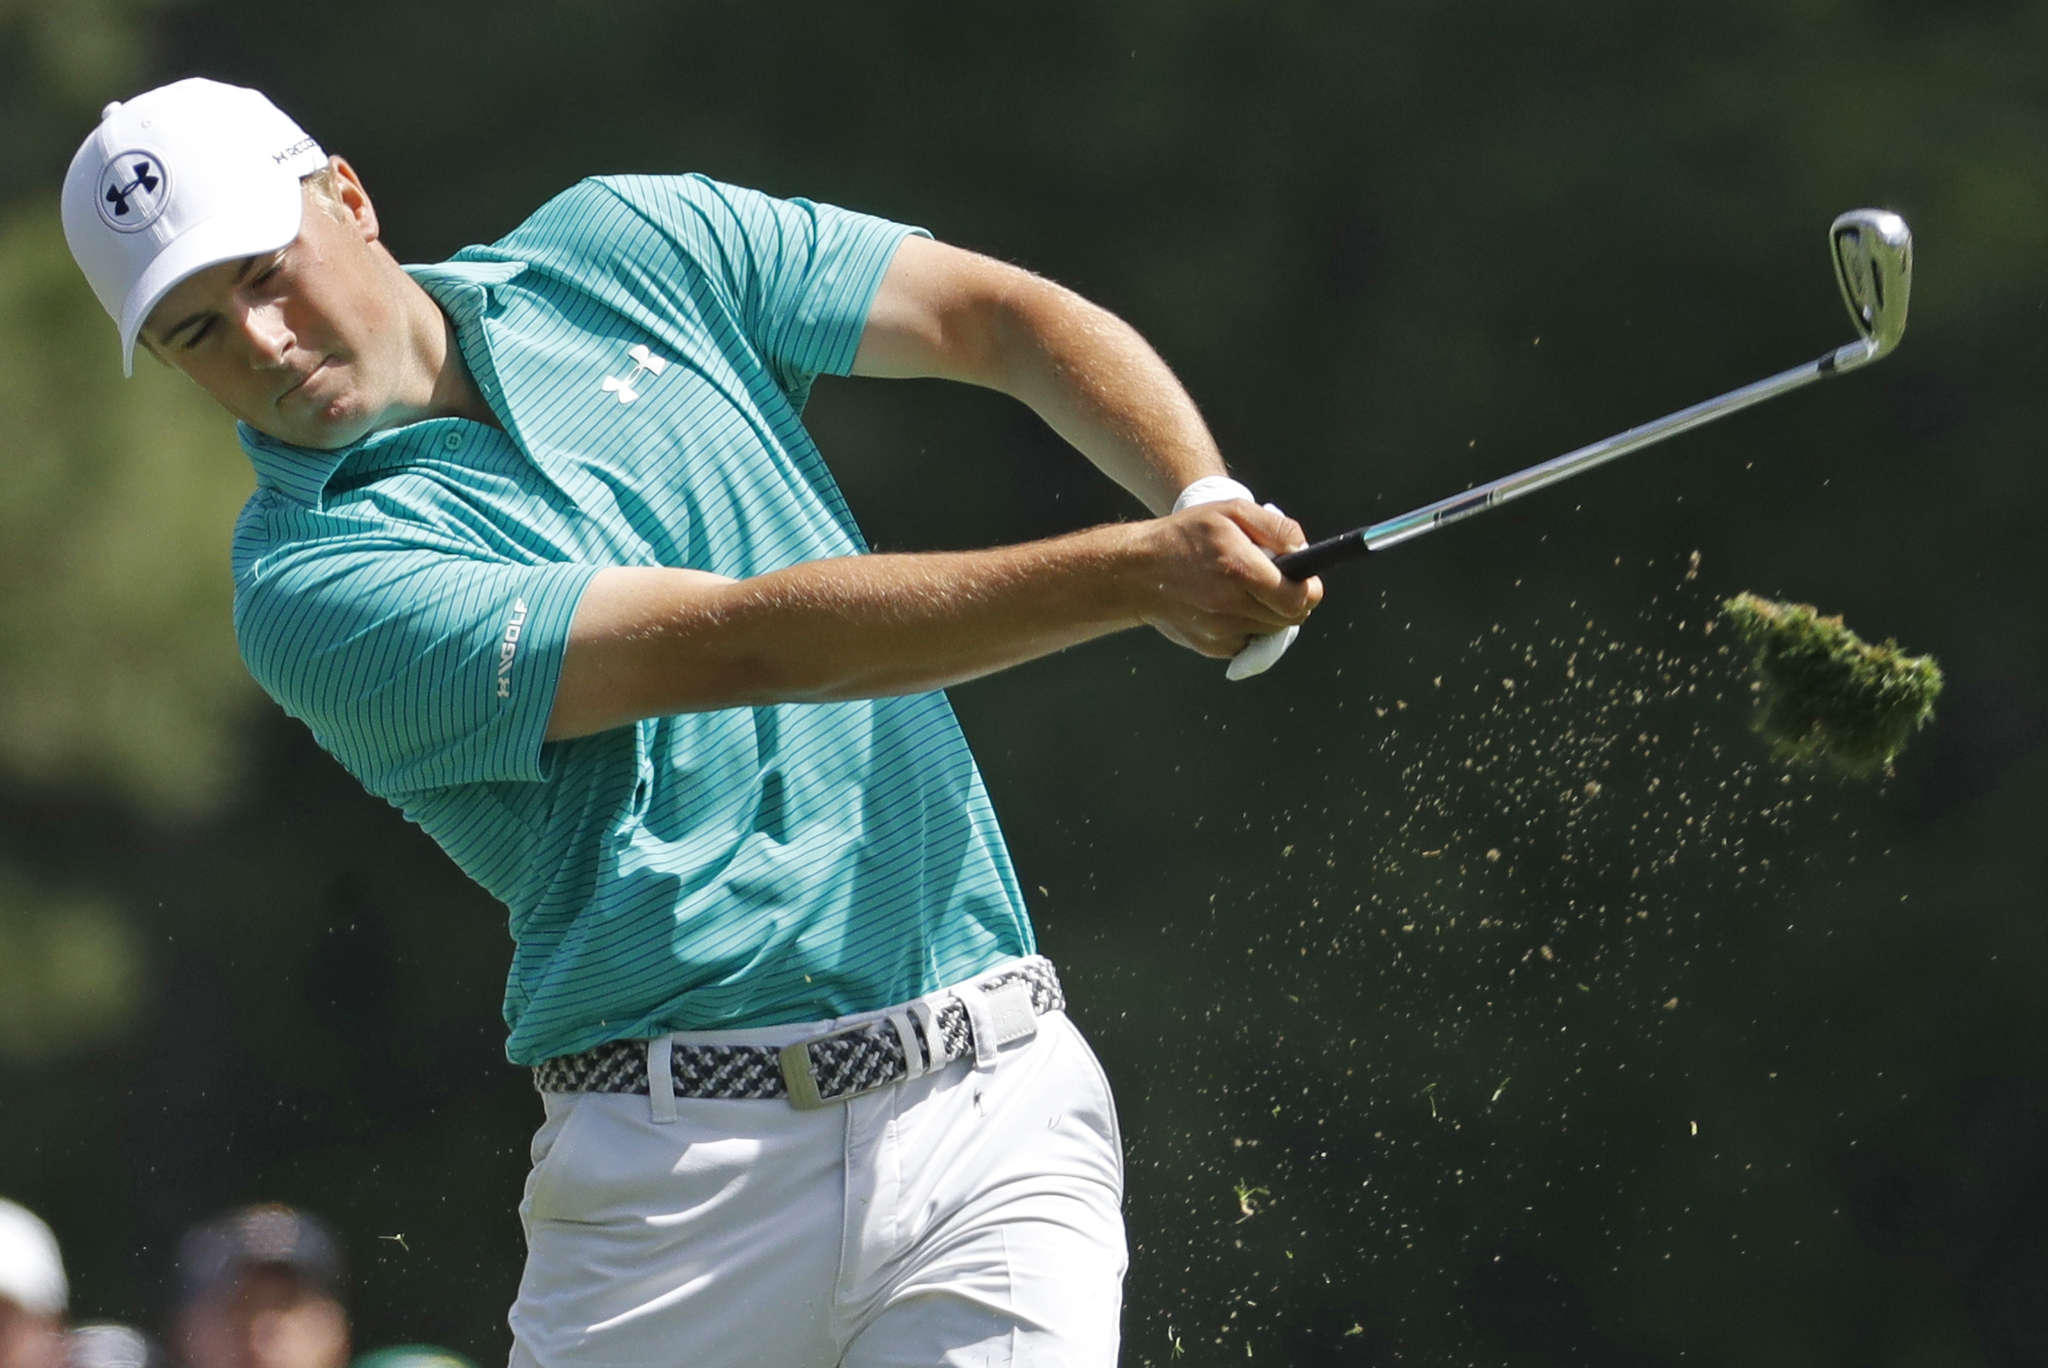 Jordan Spieth, , the defending champion, tees off at No. 12 during his first round at the Masters. Associated Press